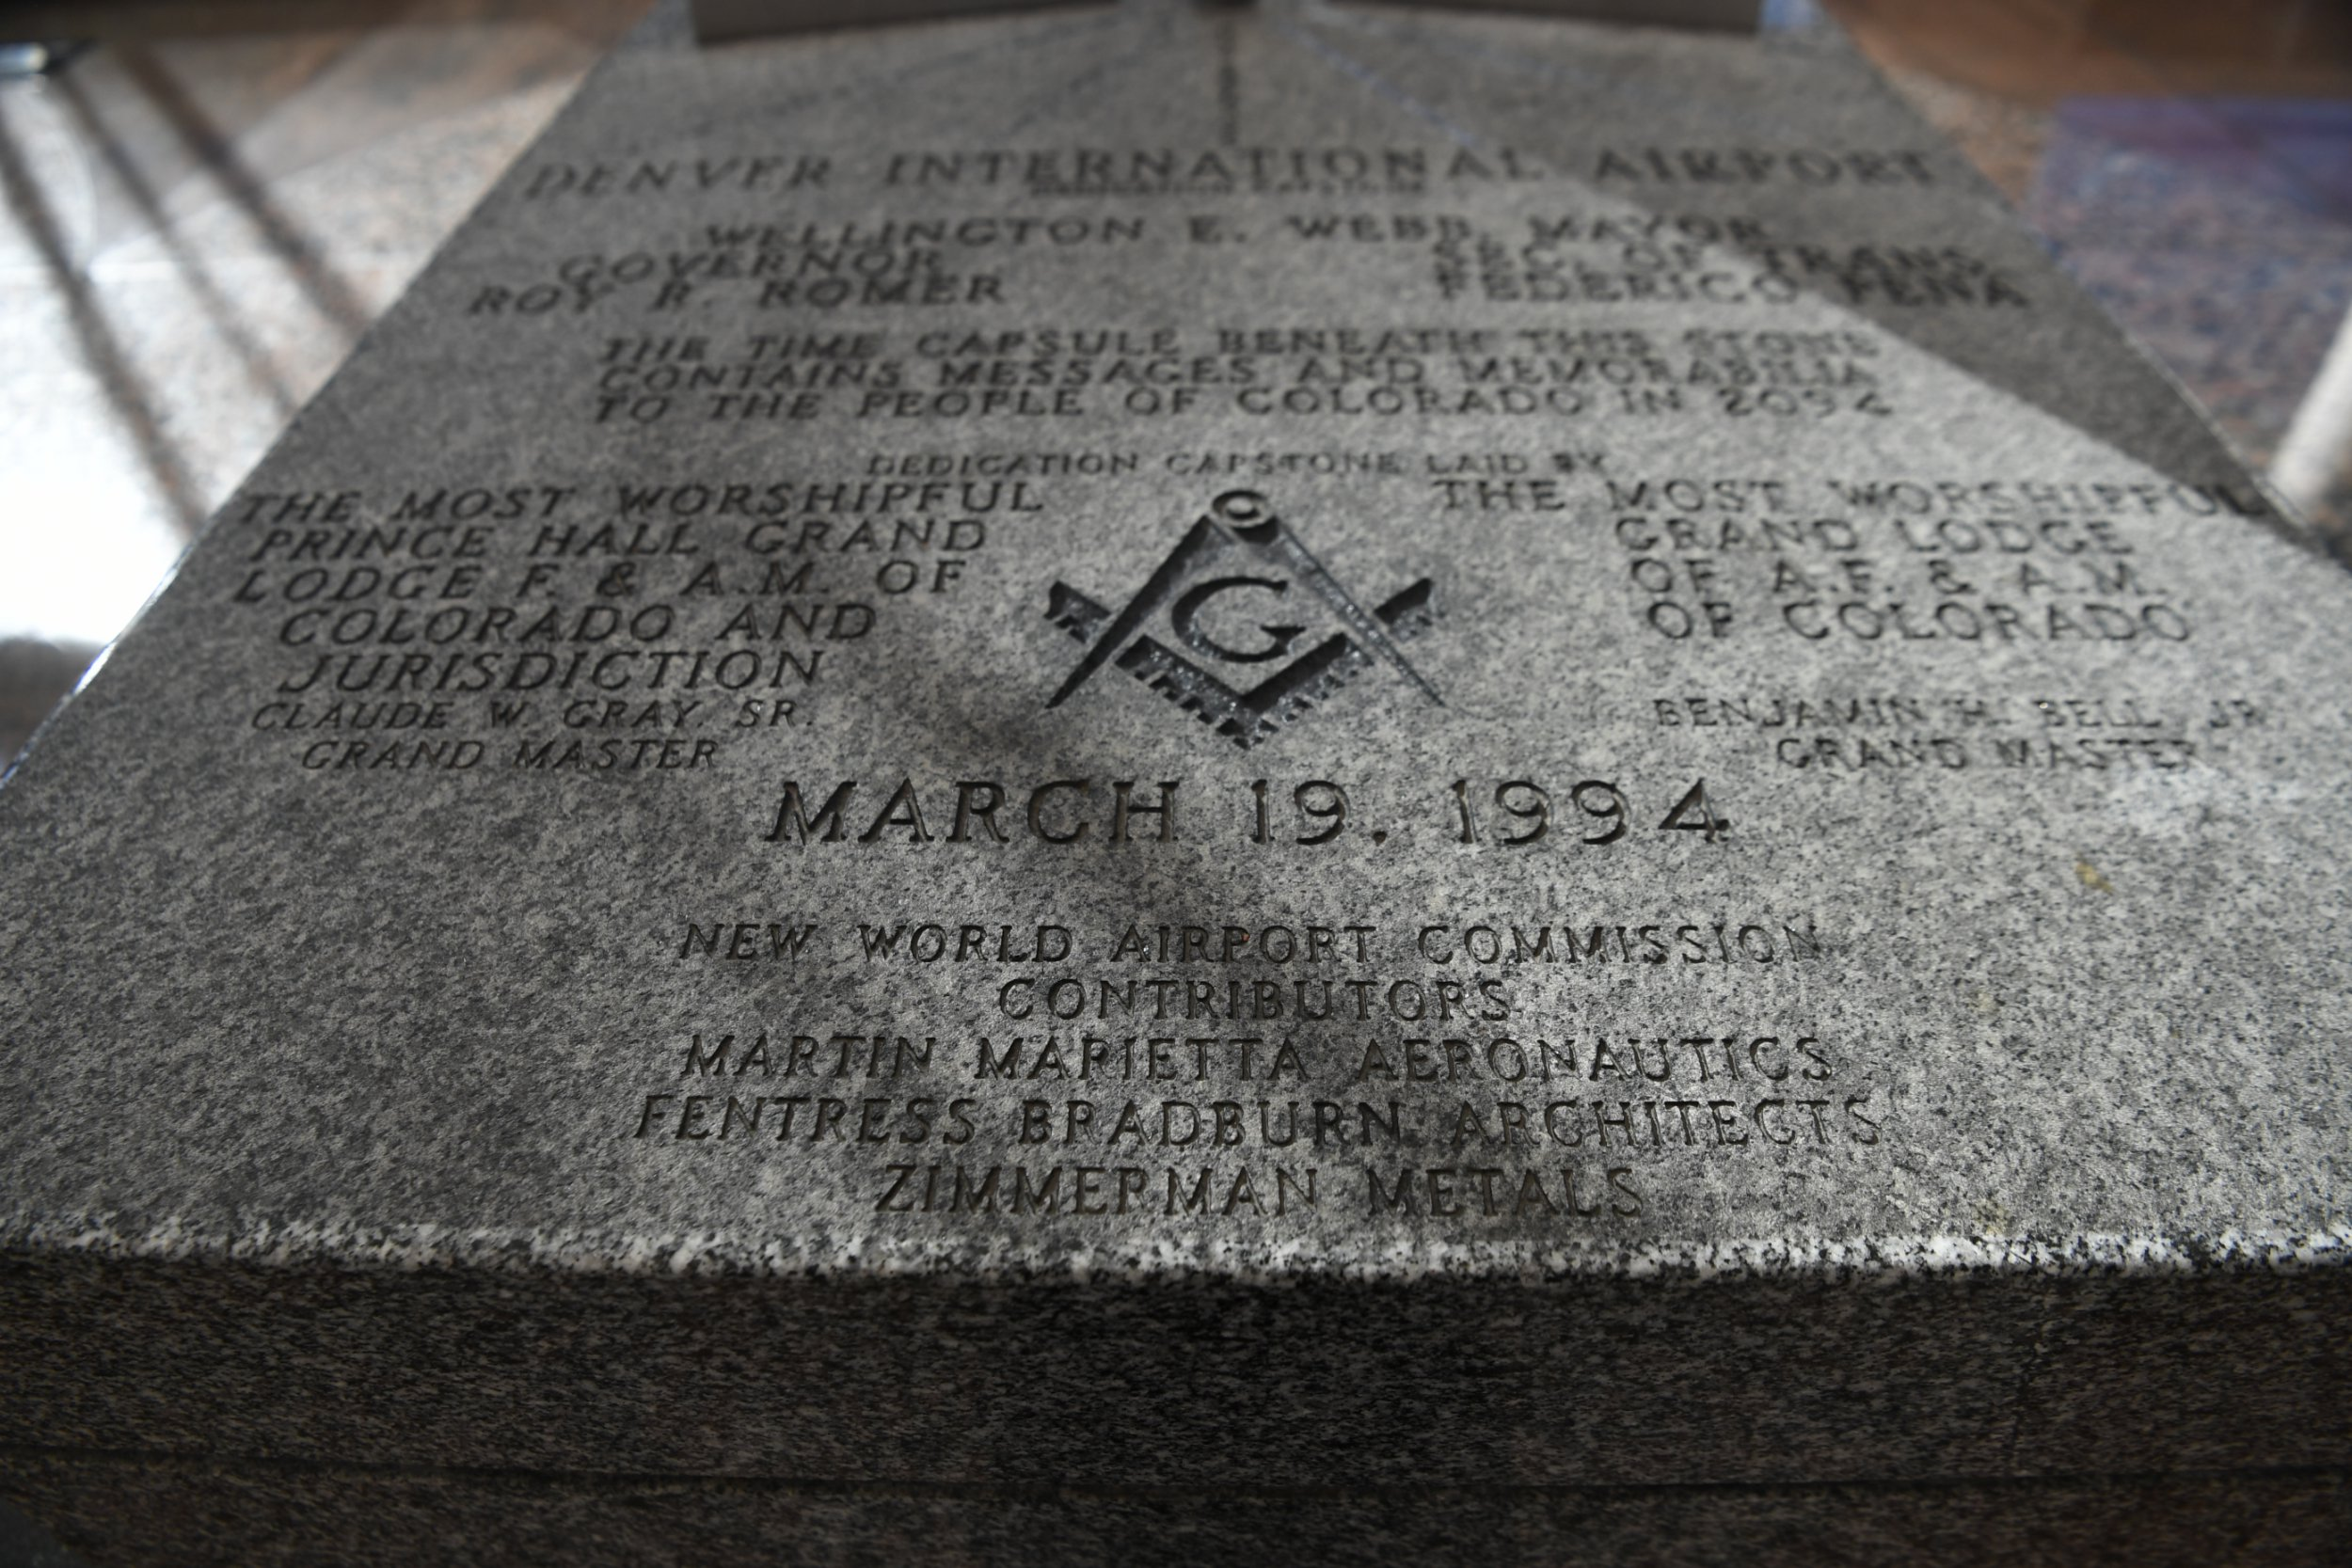 DENVER, CO - October 20: A time capsule scribed with a Freemason symbol and the words New World Airport Commission at Denver International Airport October 20, 2016. (Photo by Andy Cross/The Denver Post via Getty Images)